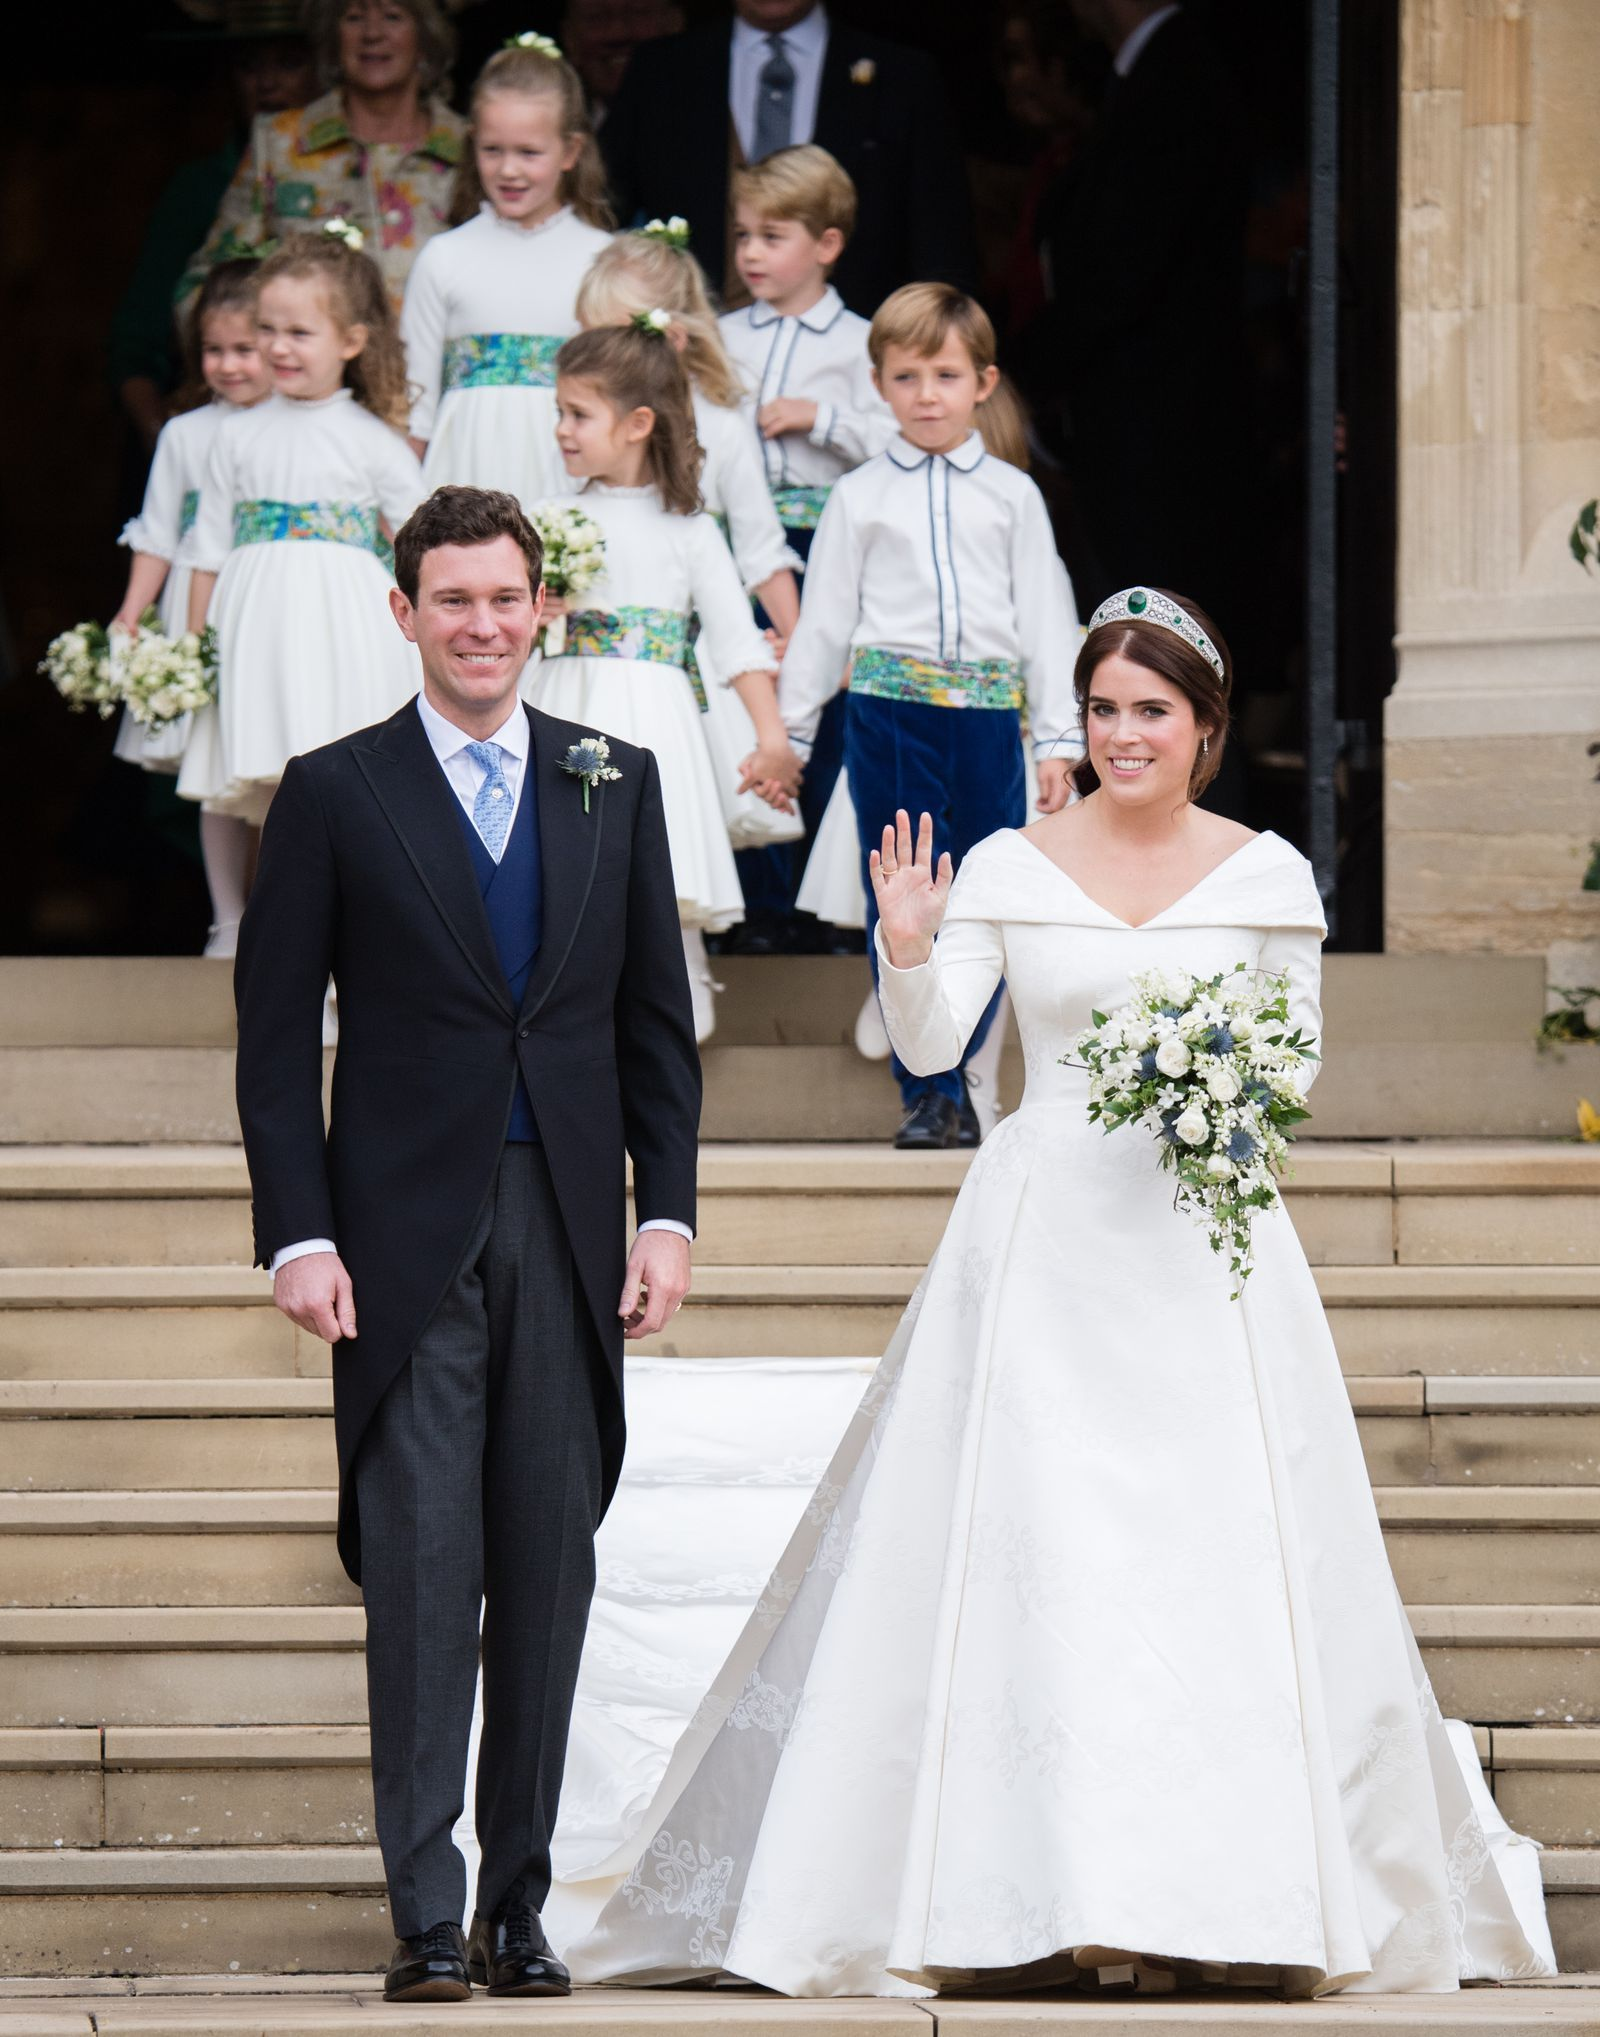 12 Things You Missed About Princess Eugenie S Wedding Dresses Wedding Dresses Princess Beatrice Wedding Royal Wedding Gowns [ 2037 x 1600 Pixel ]